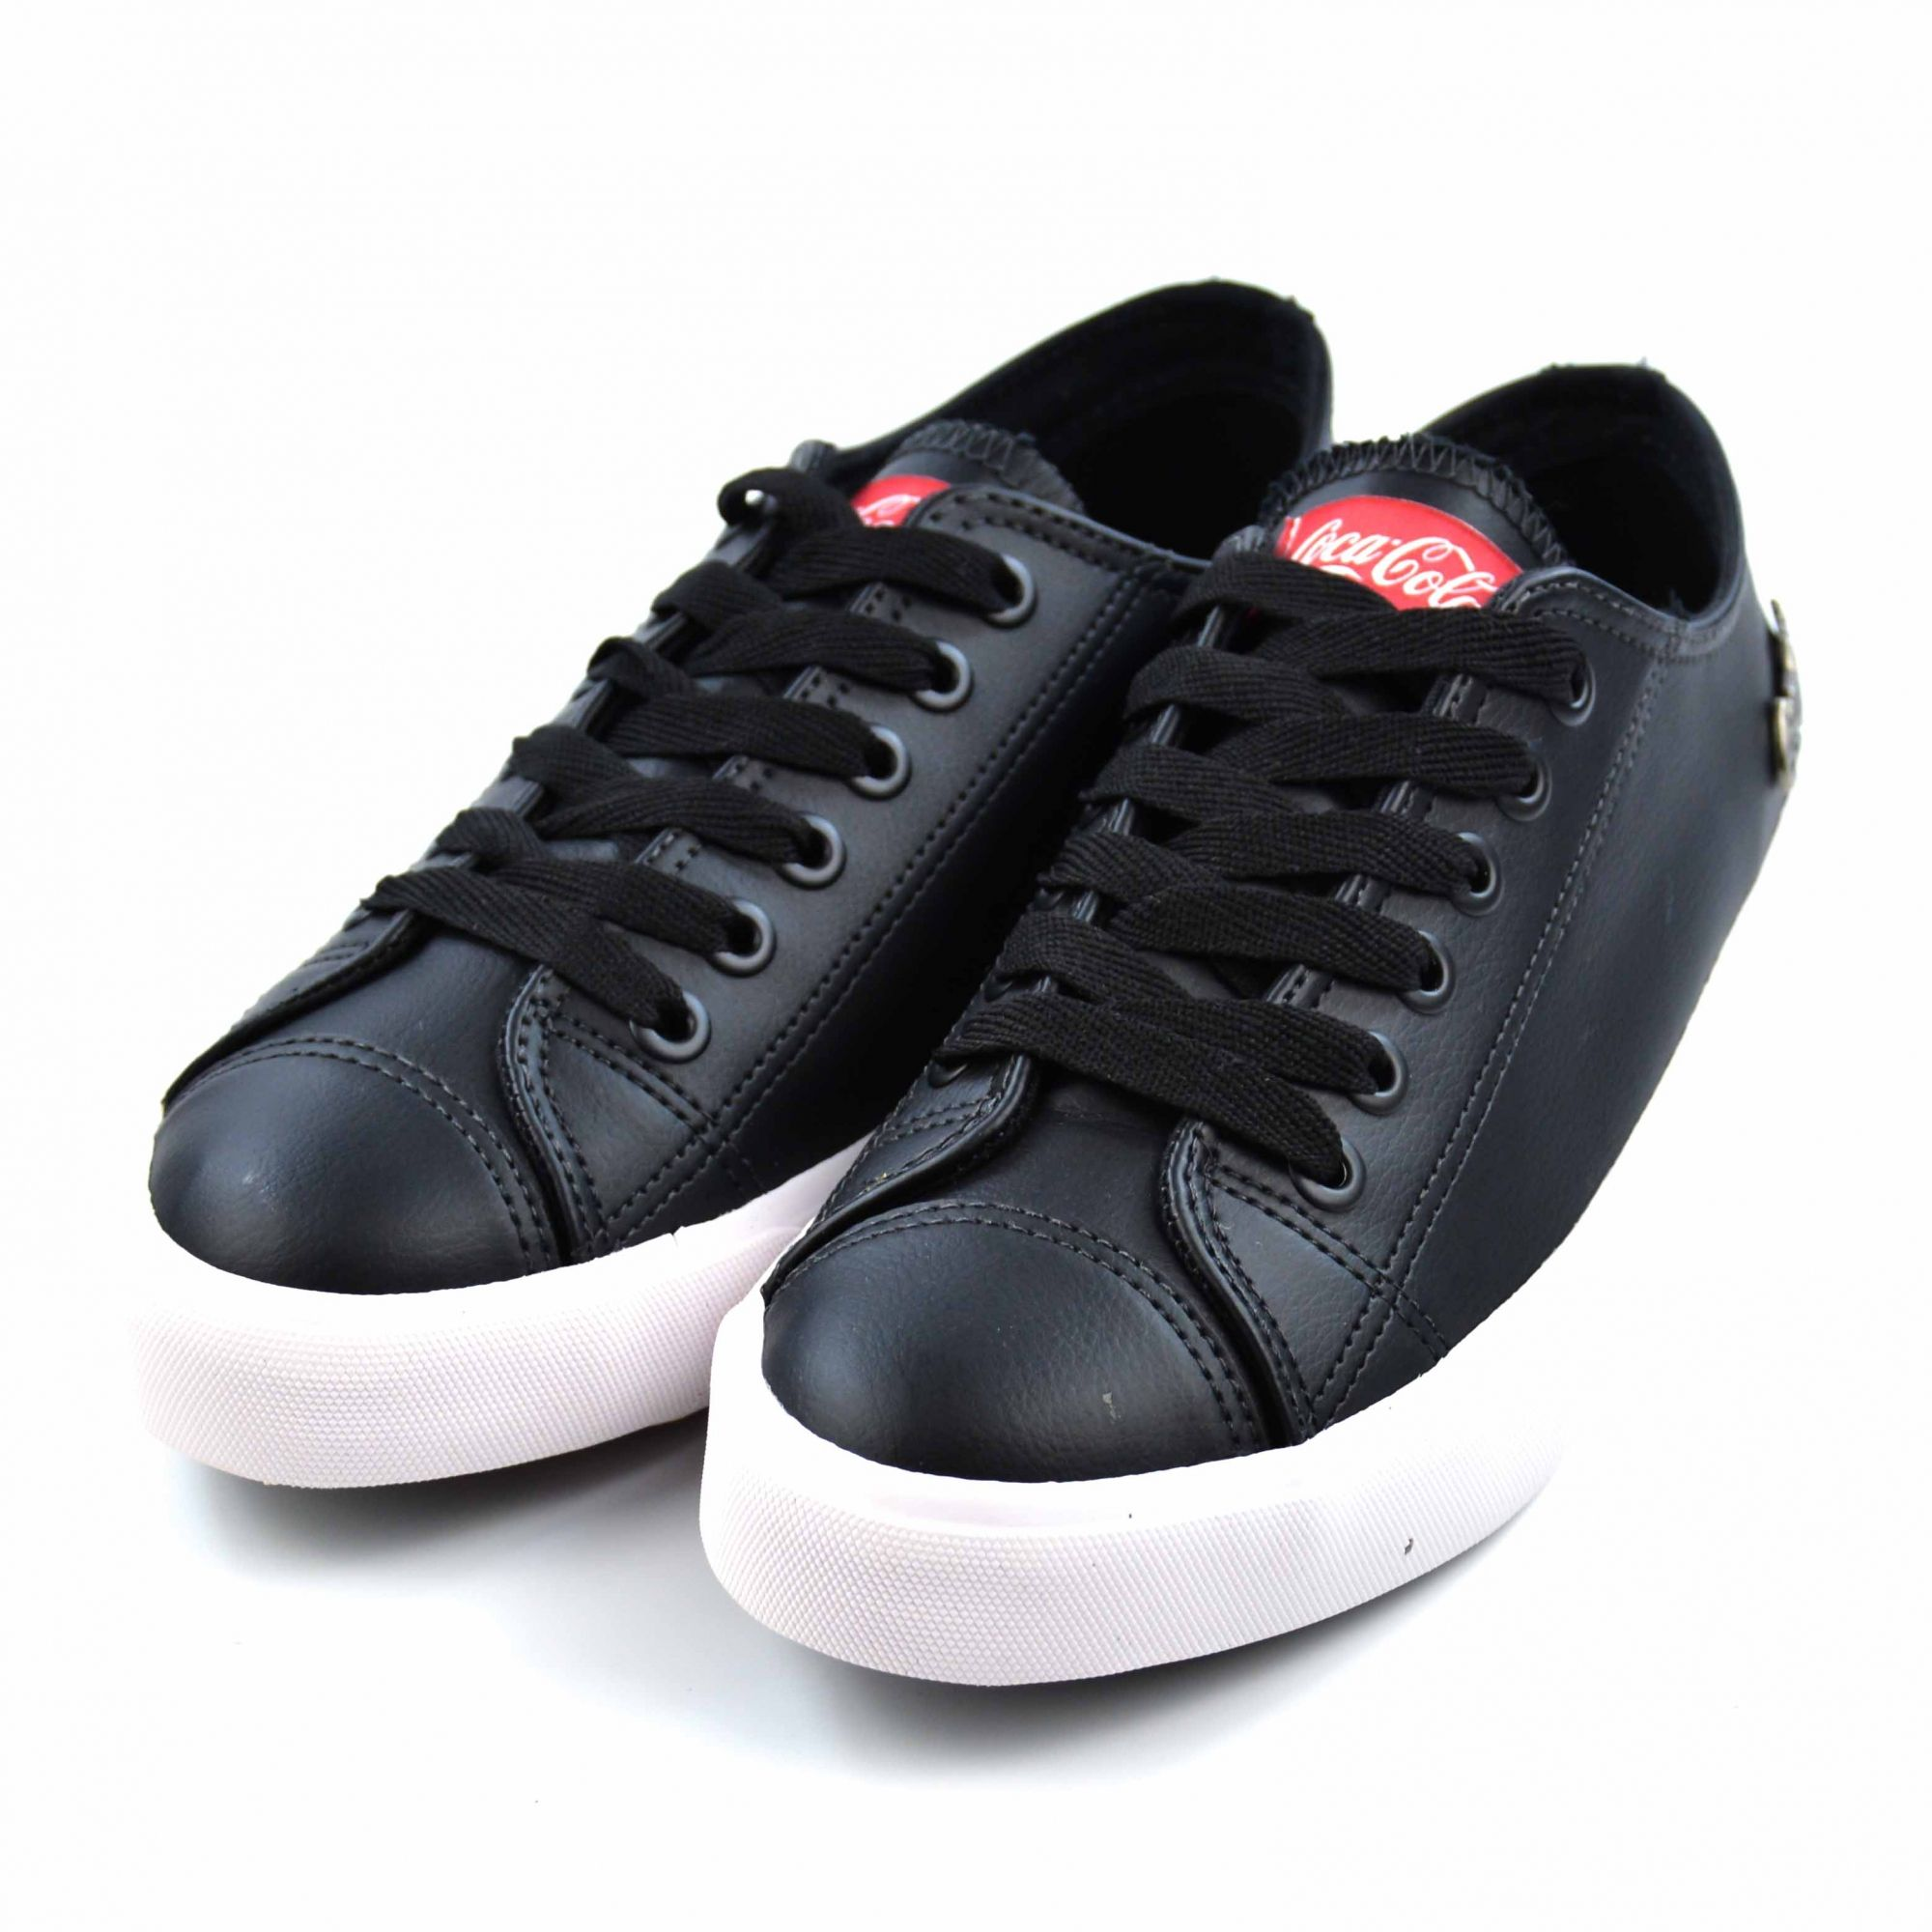 E> TENIS BASKET FLOATER LOW PRETO 0887 COCA-COLA 13814